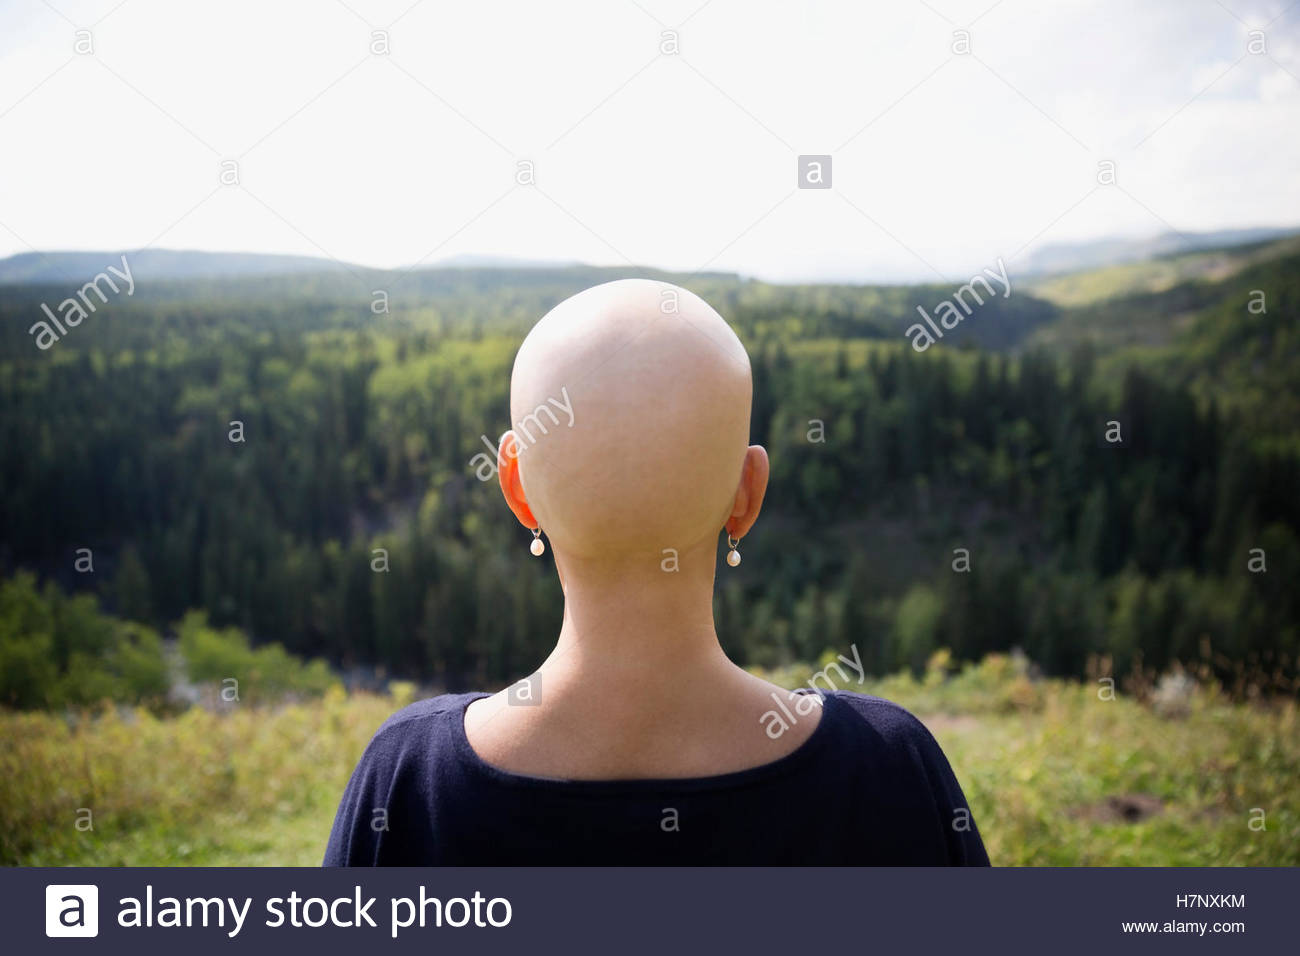 Female cancer survivor with shaved head looking at remote rural view - Stock Image